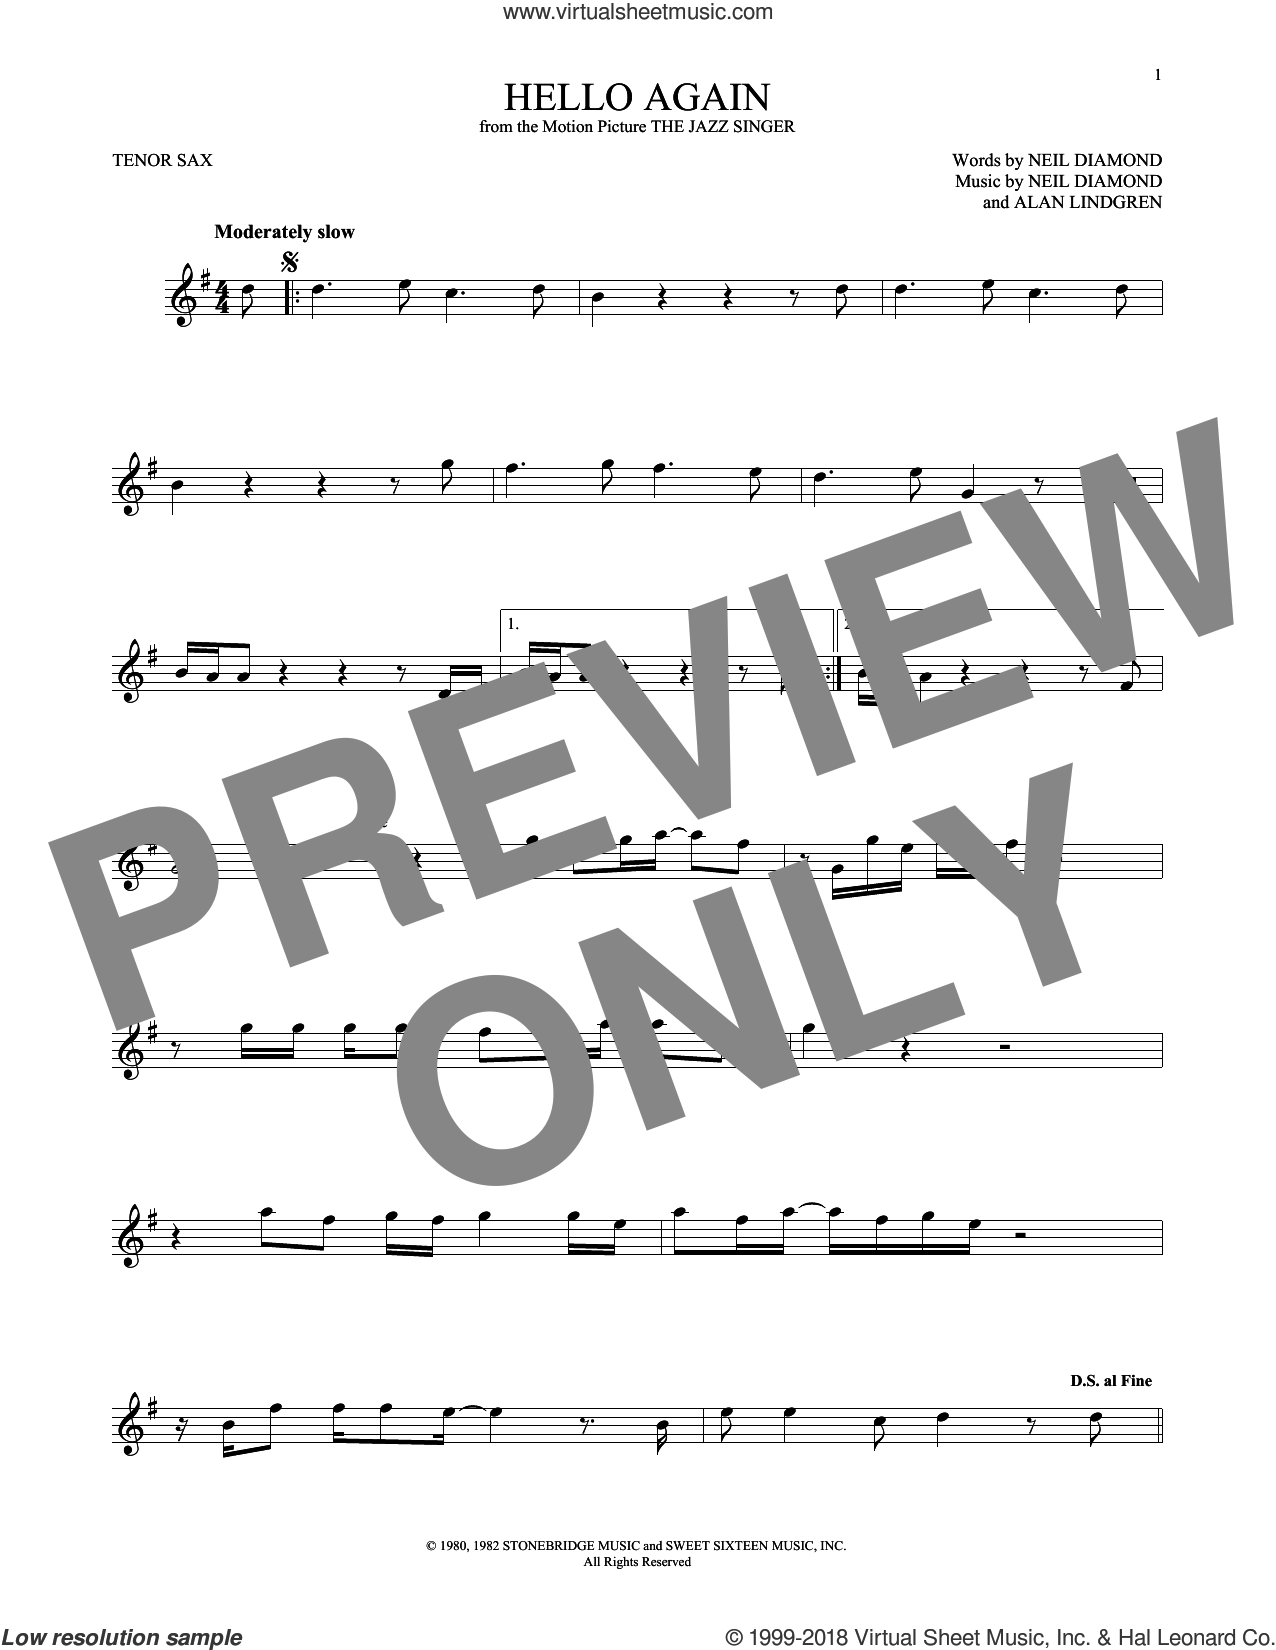 Hello Again sheet music for tenor saxophone solo ( Sax) by Neil Diamond and Alan Lindgren, intermediate tenor saxophone ( Sax)